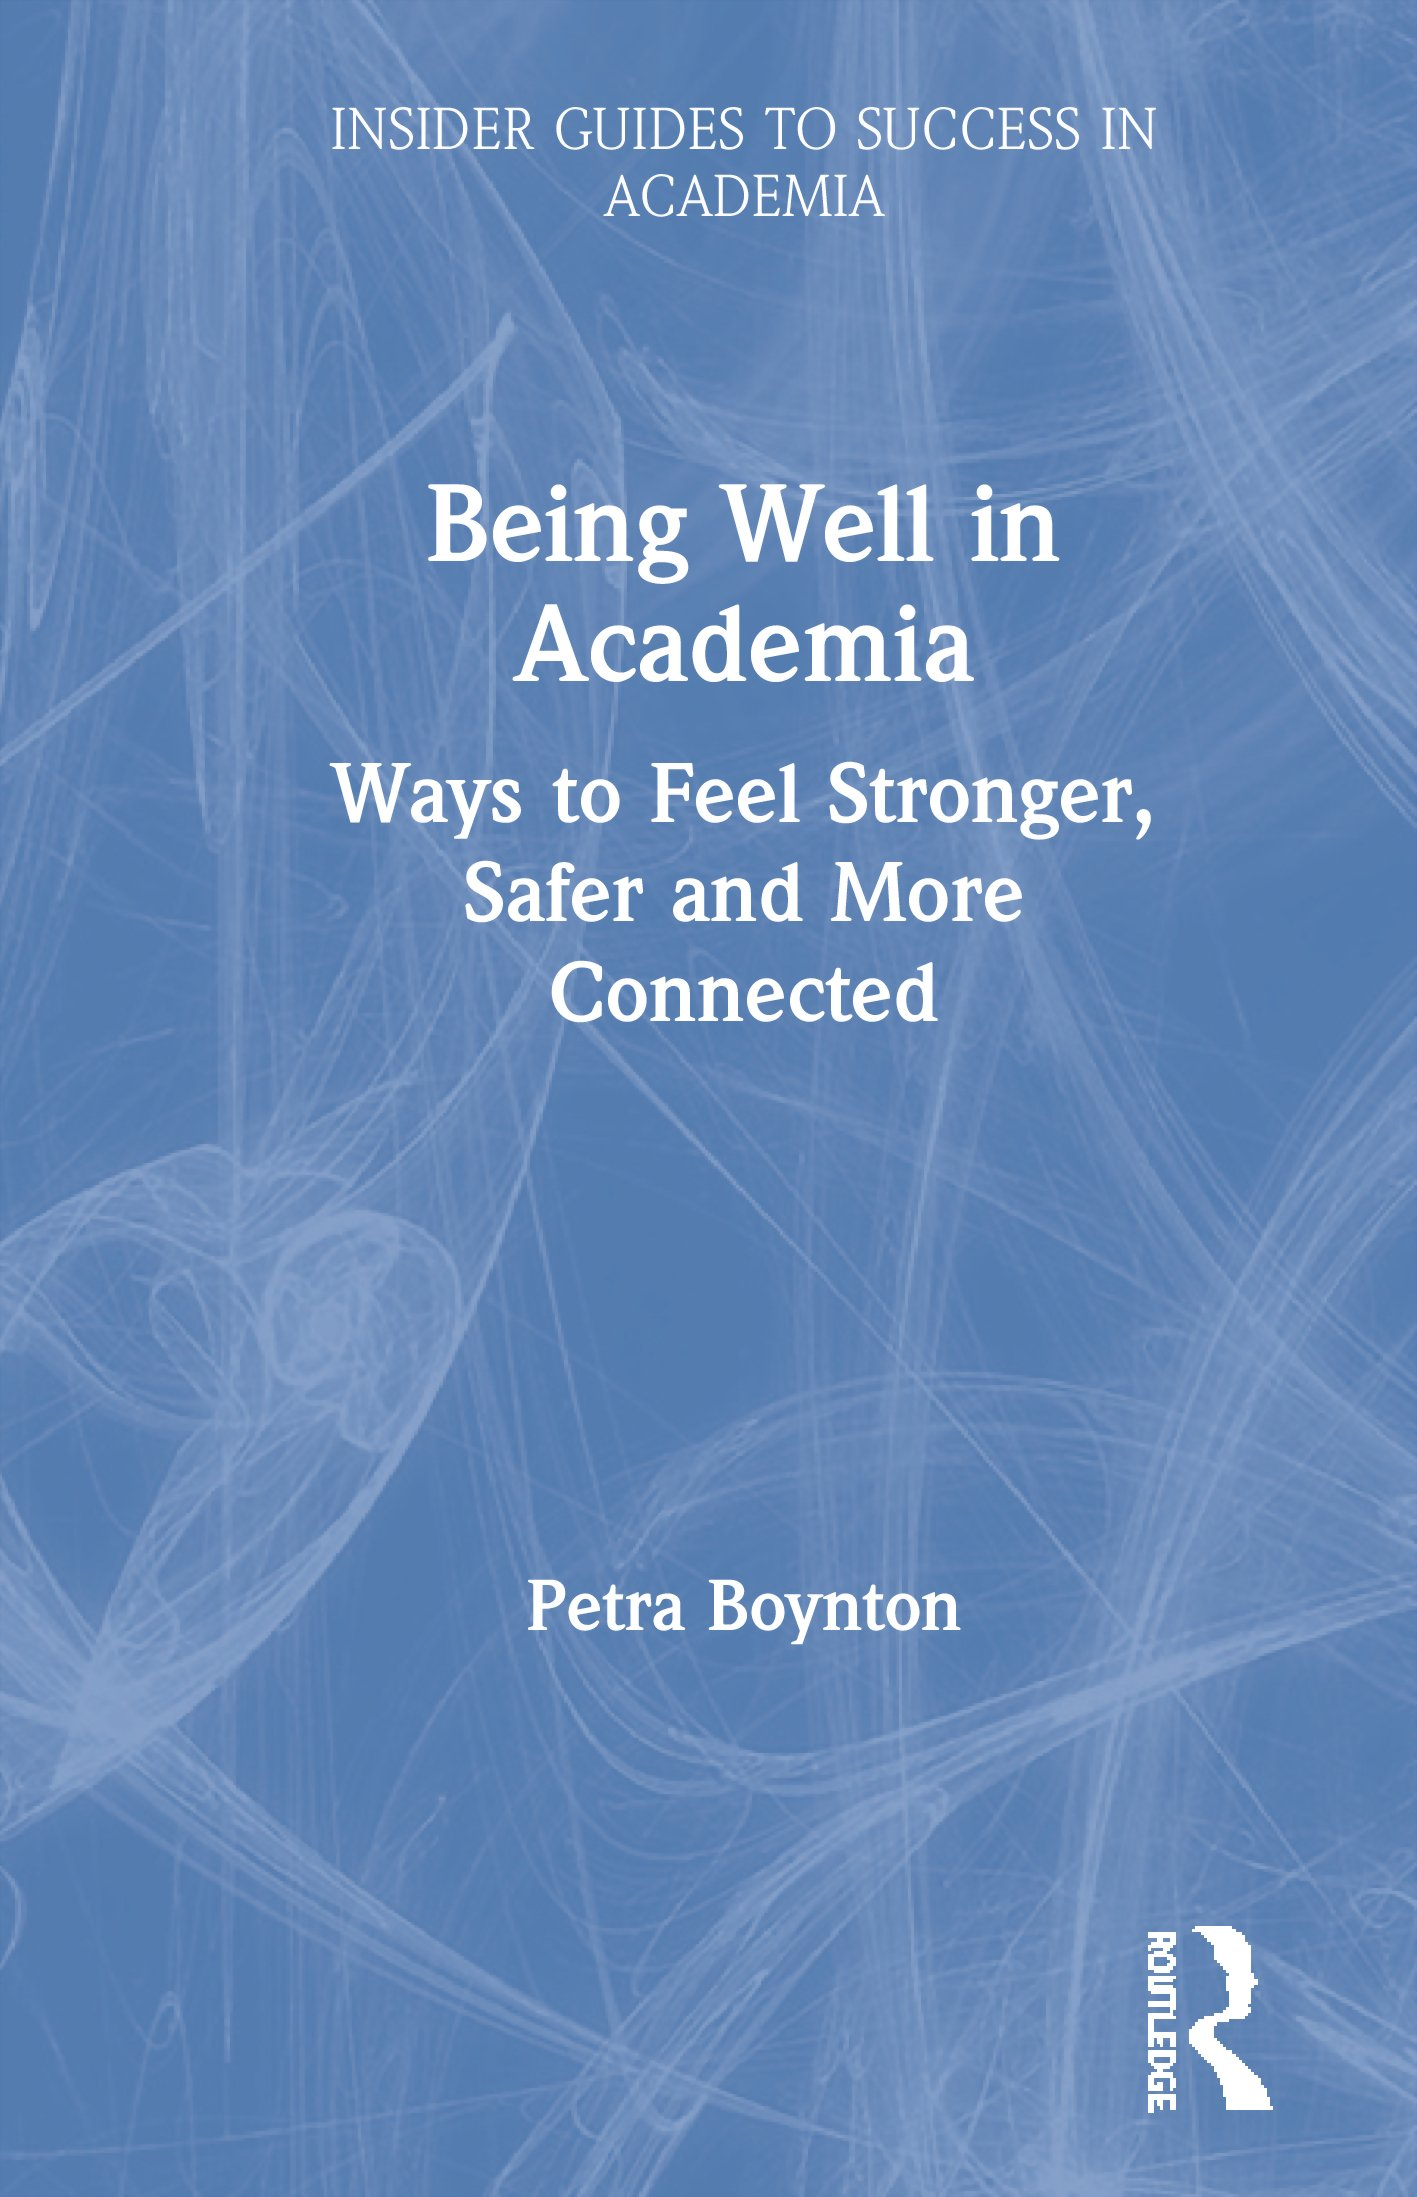 Being Well in Academia: Ways to Feel Stronger, Safer and More Connected book cover